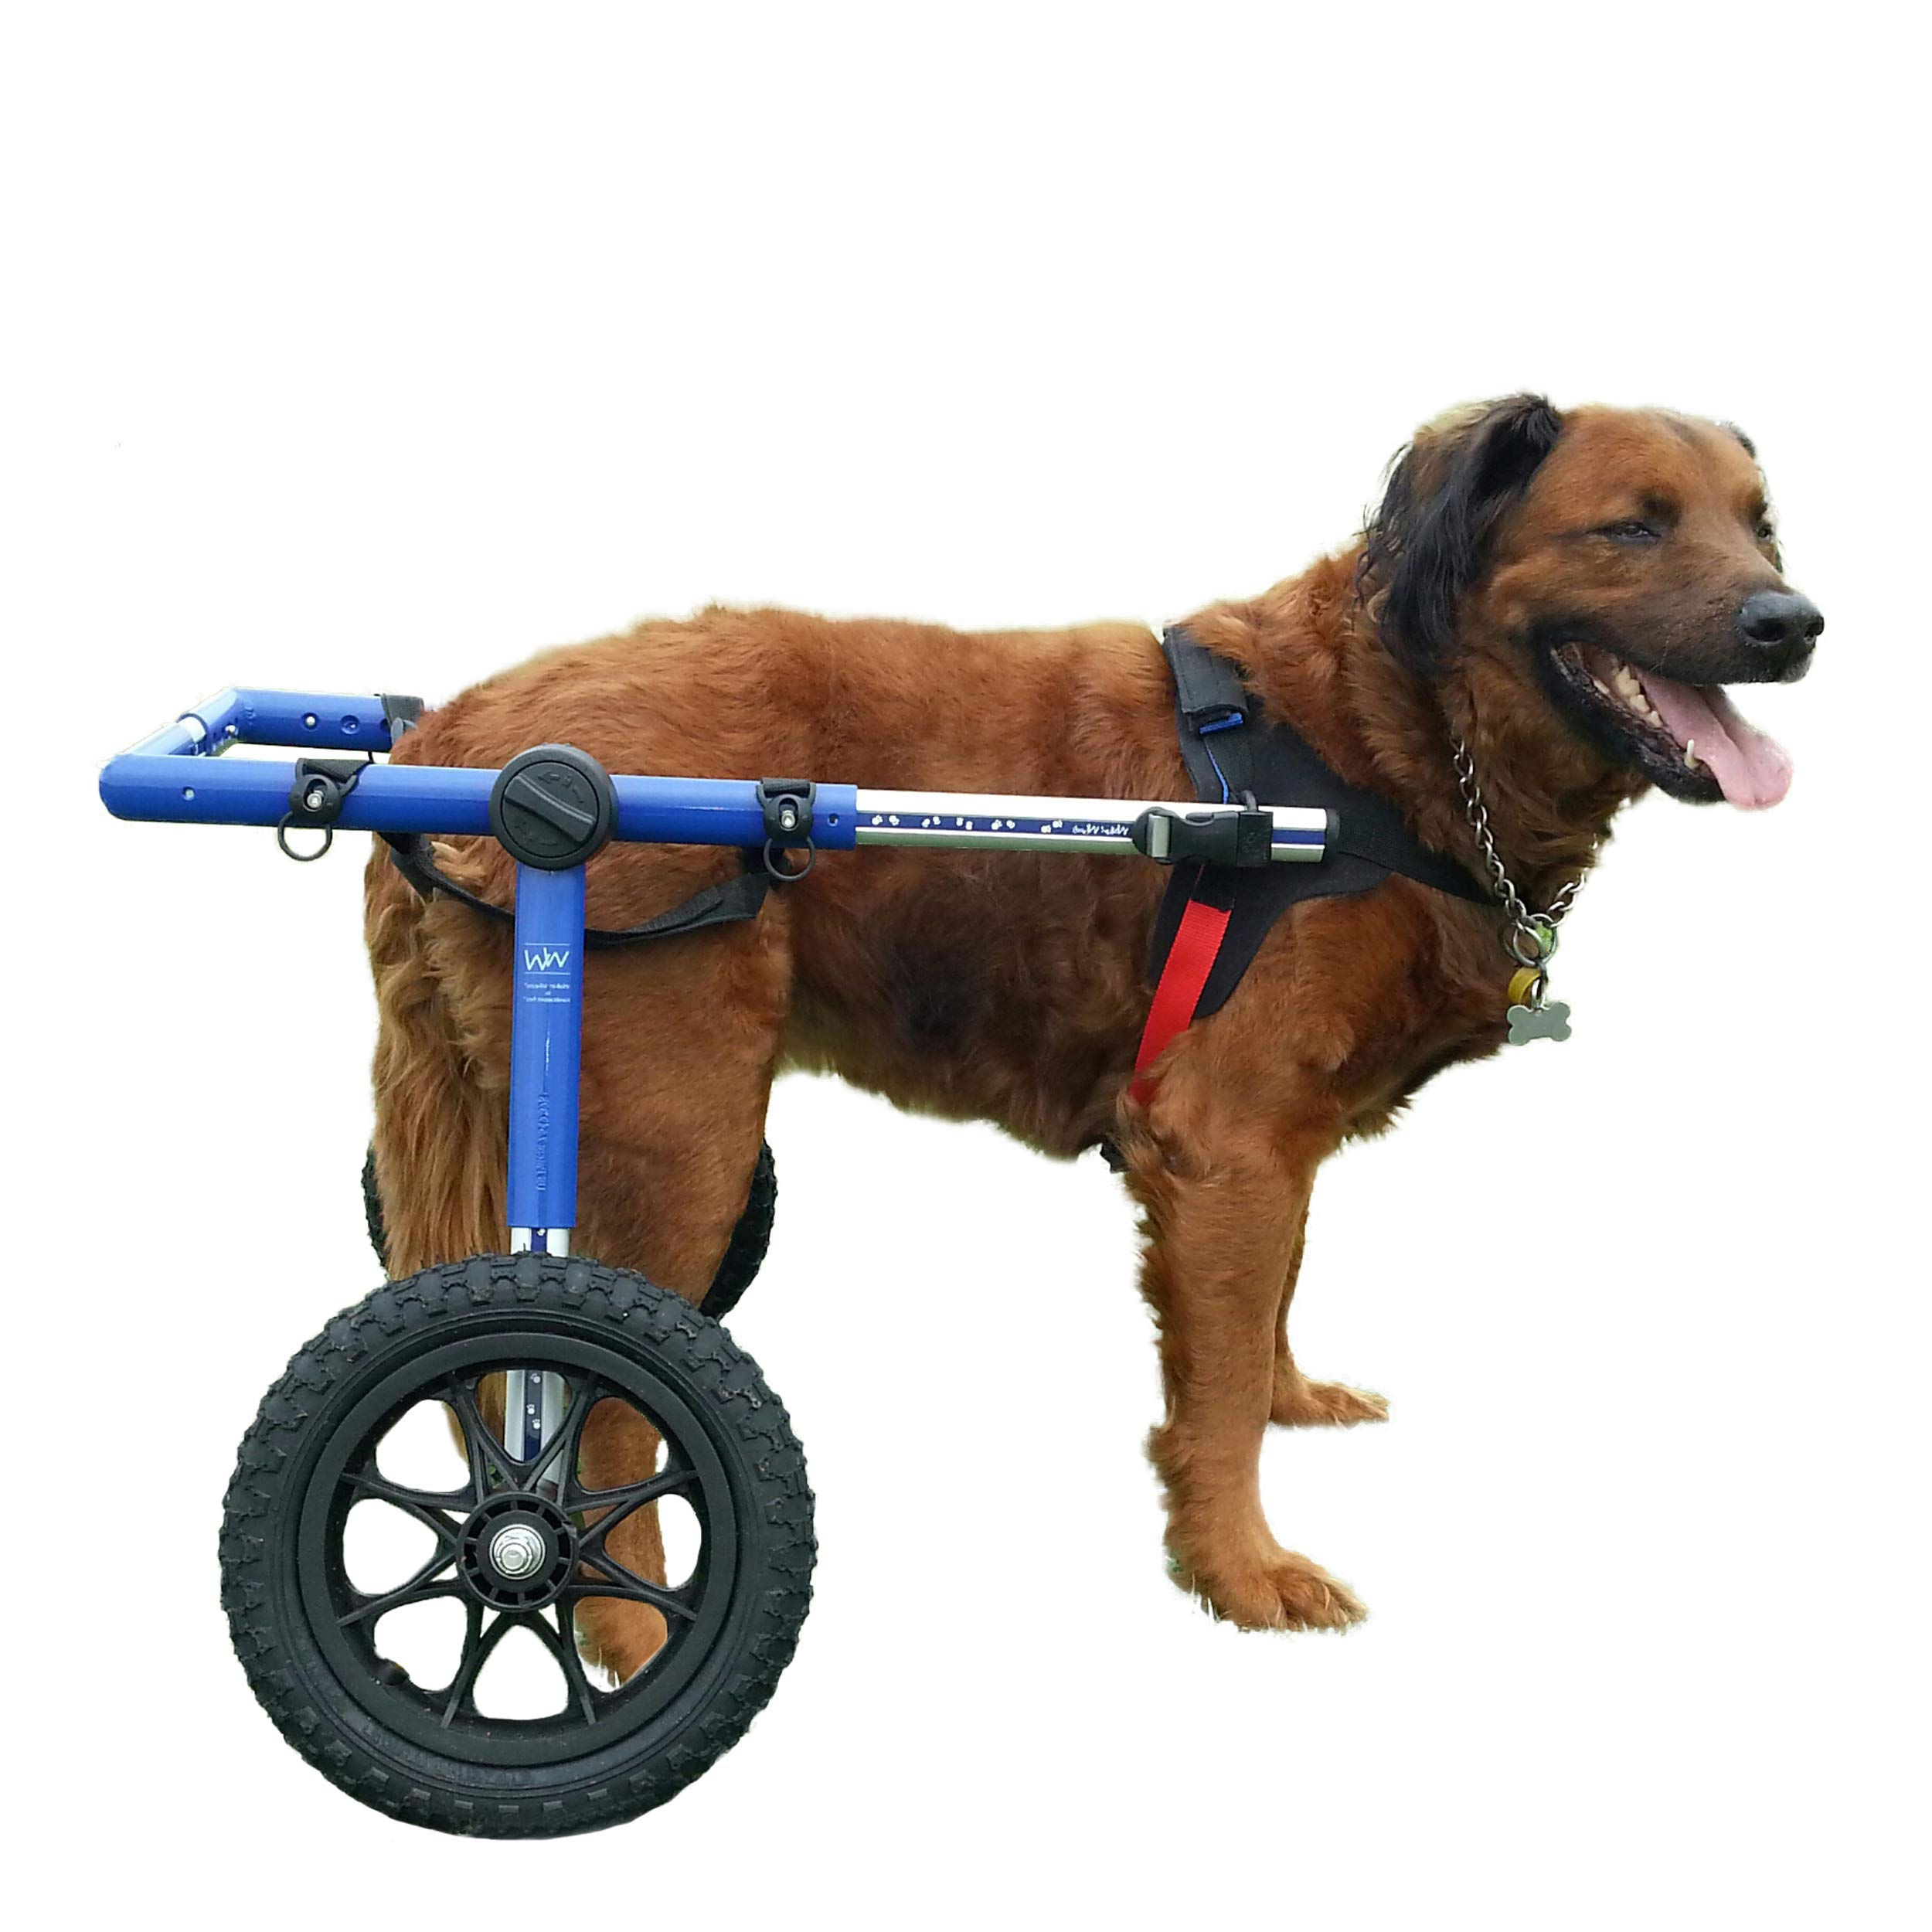 Amazon.com : Walkin' Wheels Dog Wheelchair - for Large Dogs 70-180 Pounds -  Veterinarian Approved - Dog Wheelchair for Back Legs : Disabled Dog Cart :  Pet Supplies